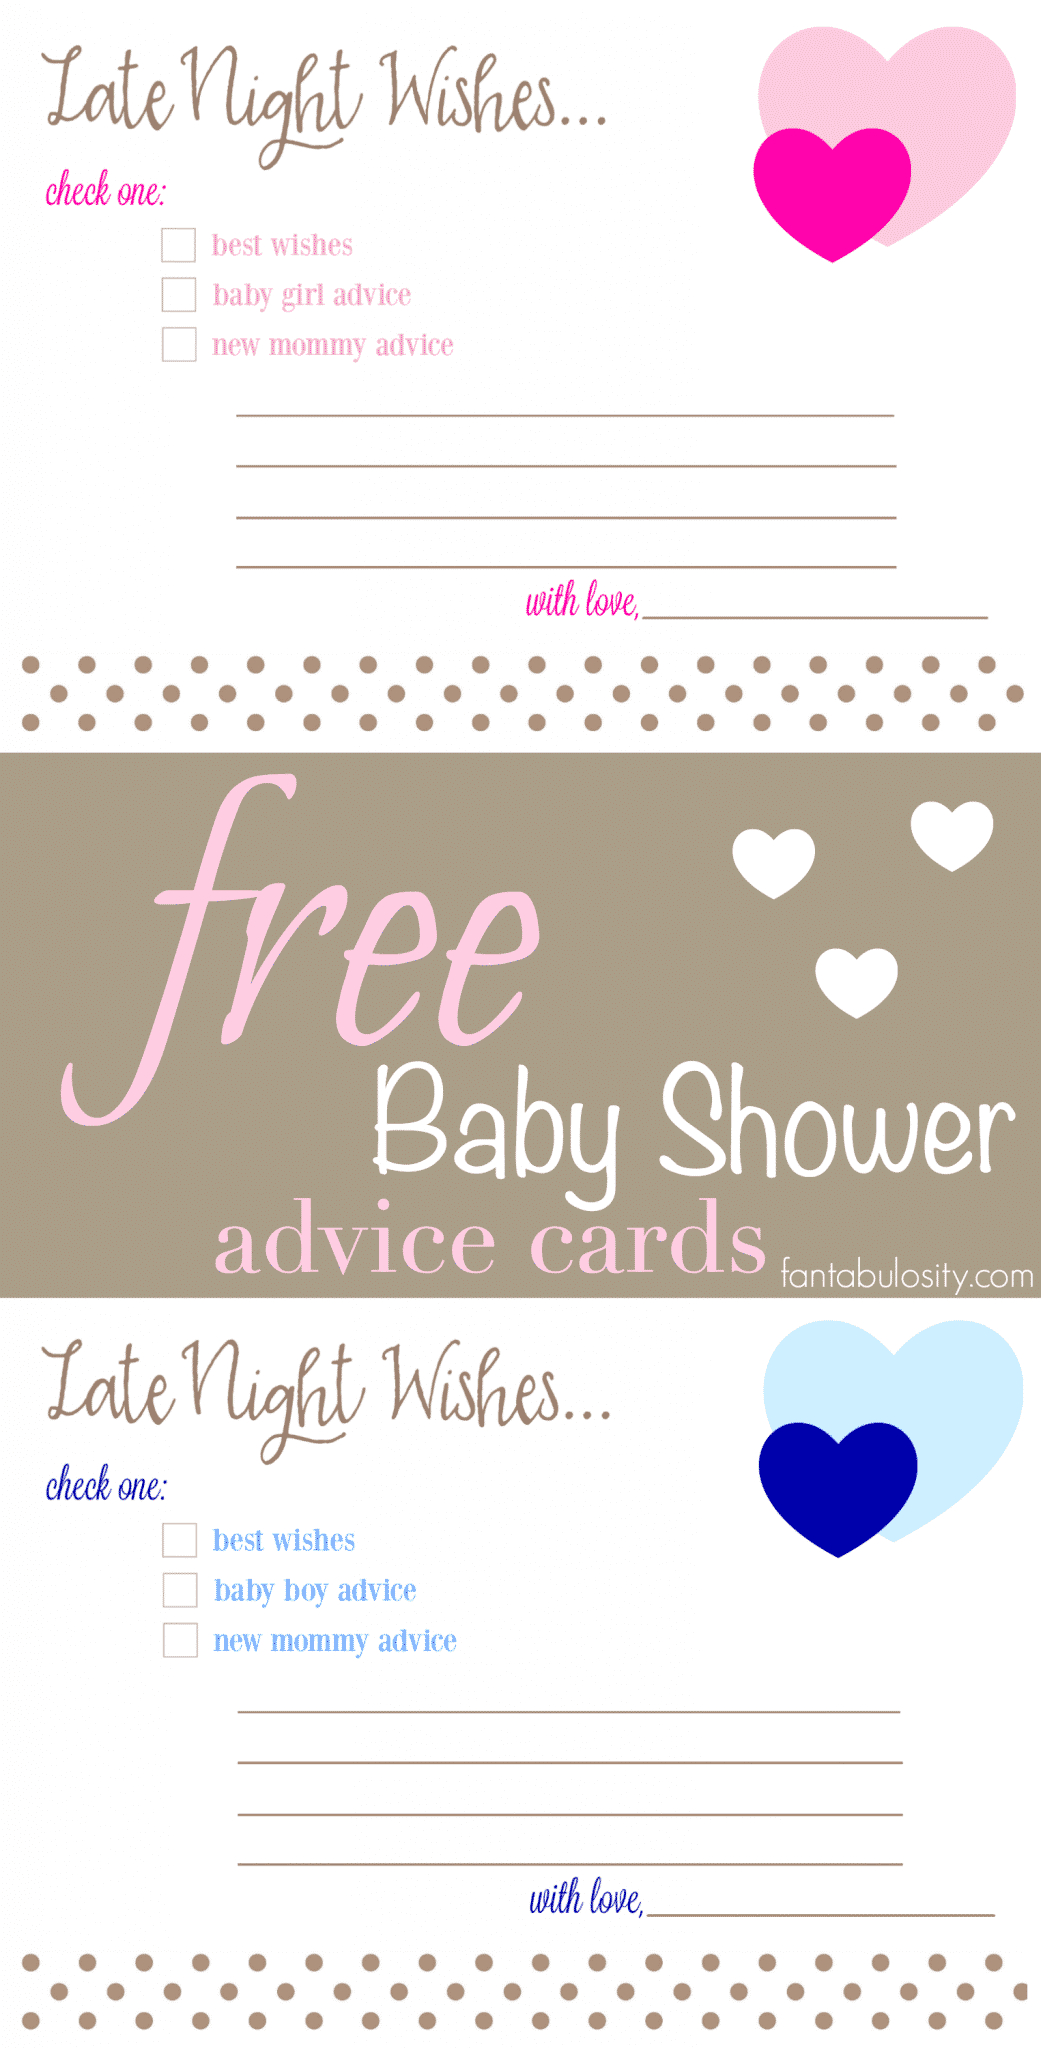 Free Printable Baby Shower Advice & Best Wishes Cards - Fantabulosity - Baby Prediction And Advice Cards Free Printable